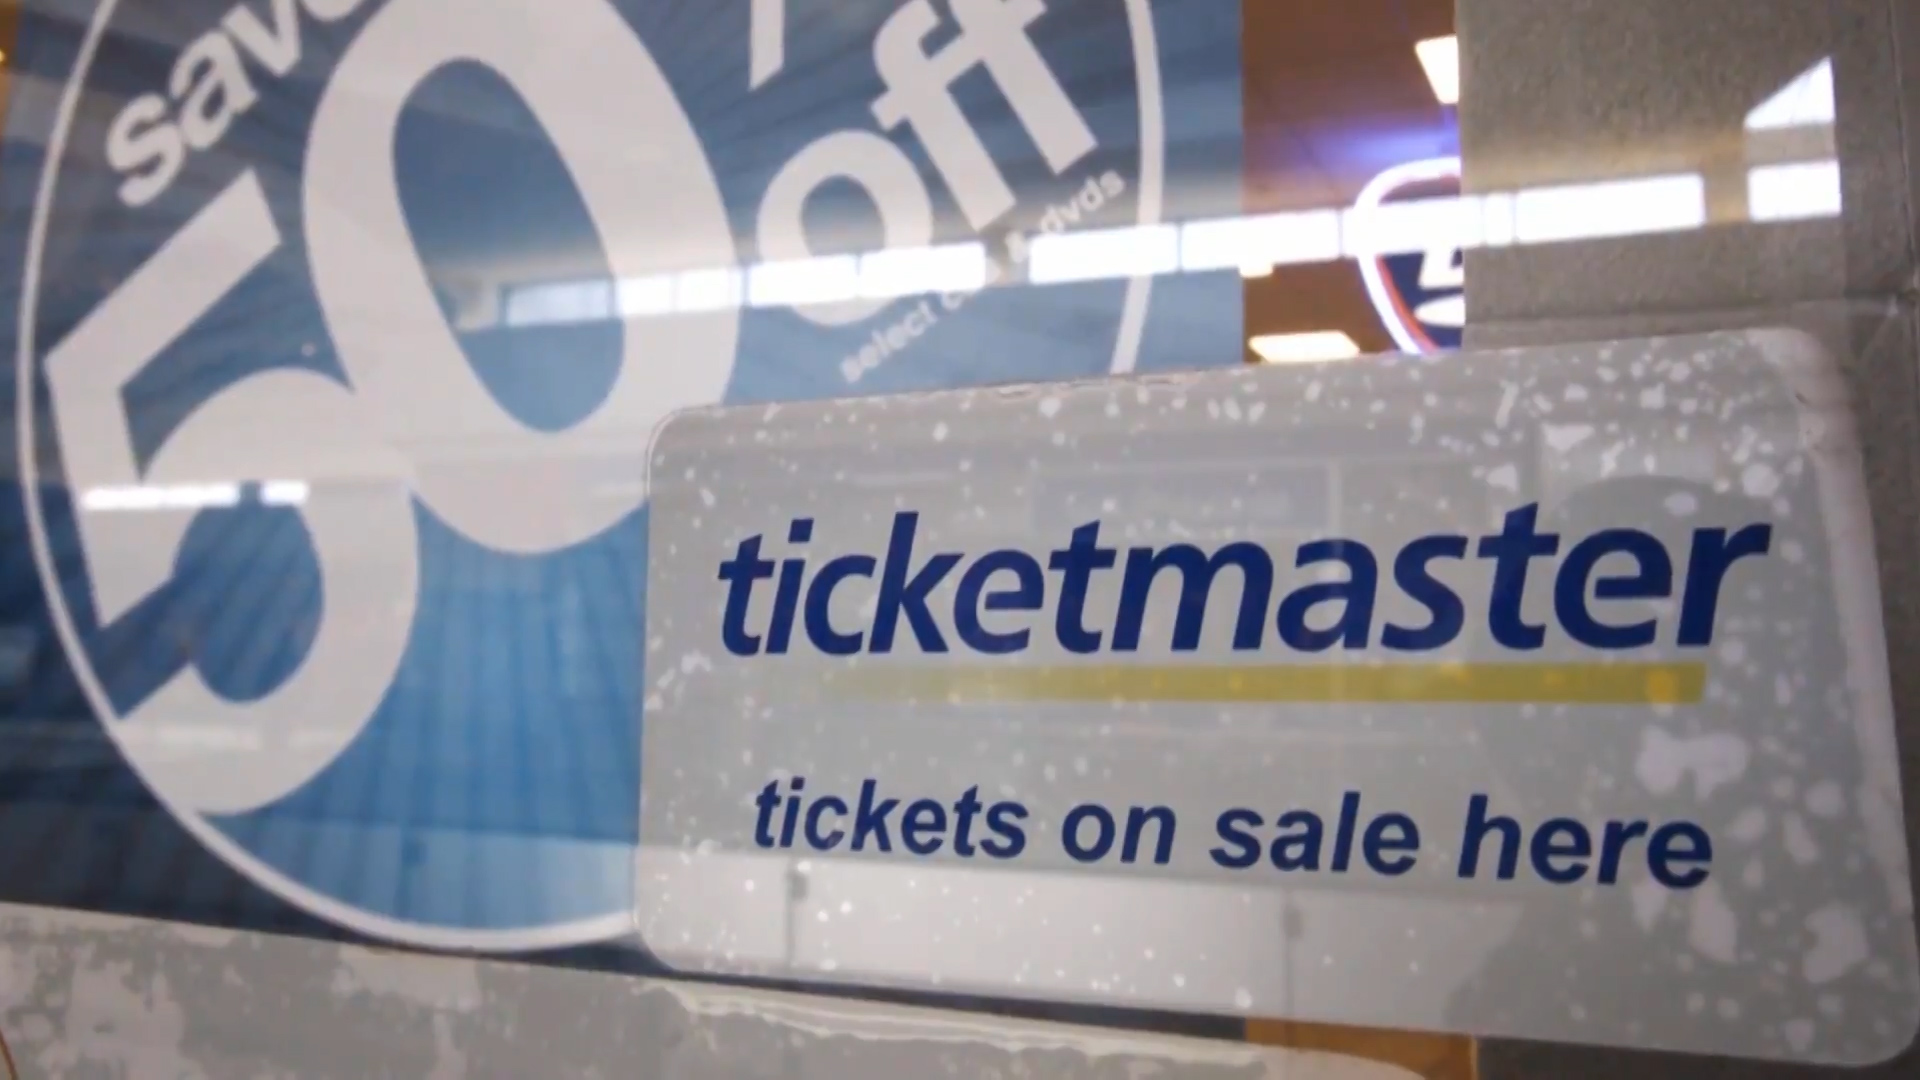 Video: How to find out if you're getting a Ticketmaster voucher